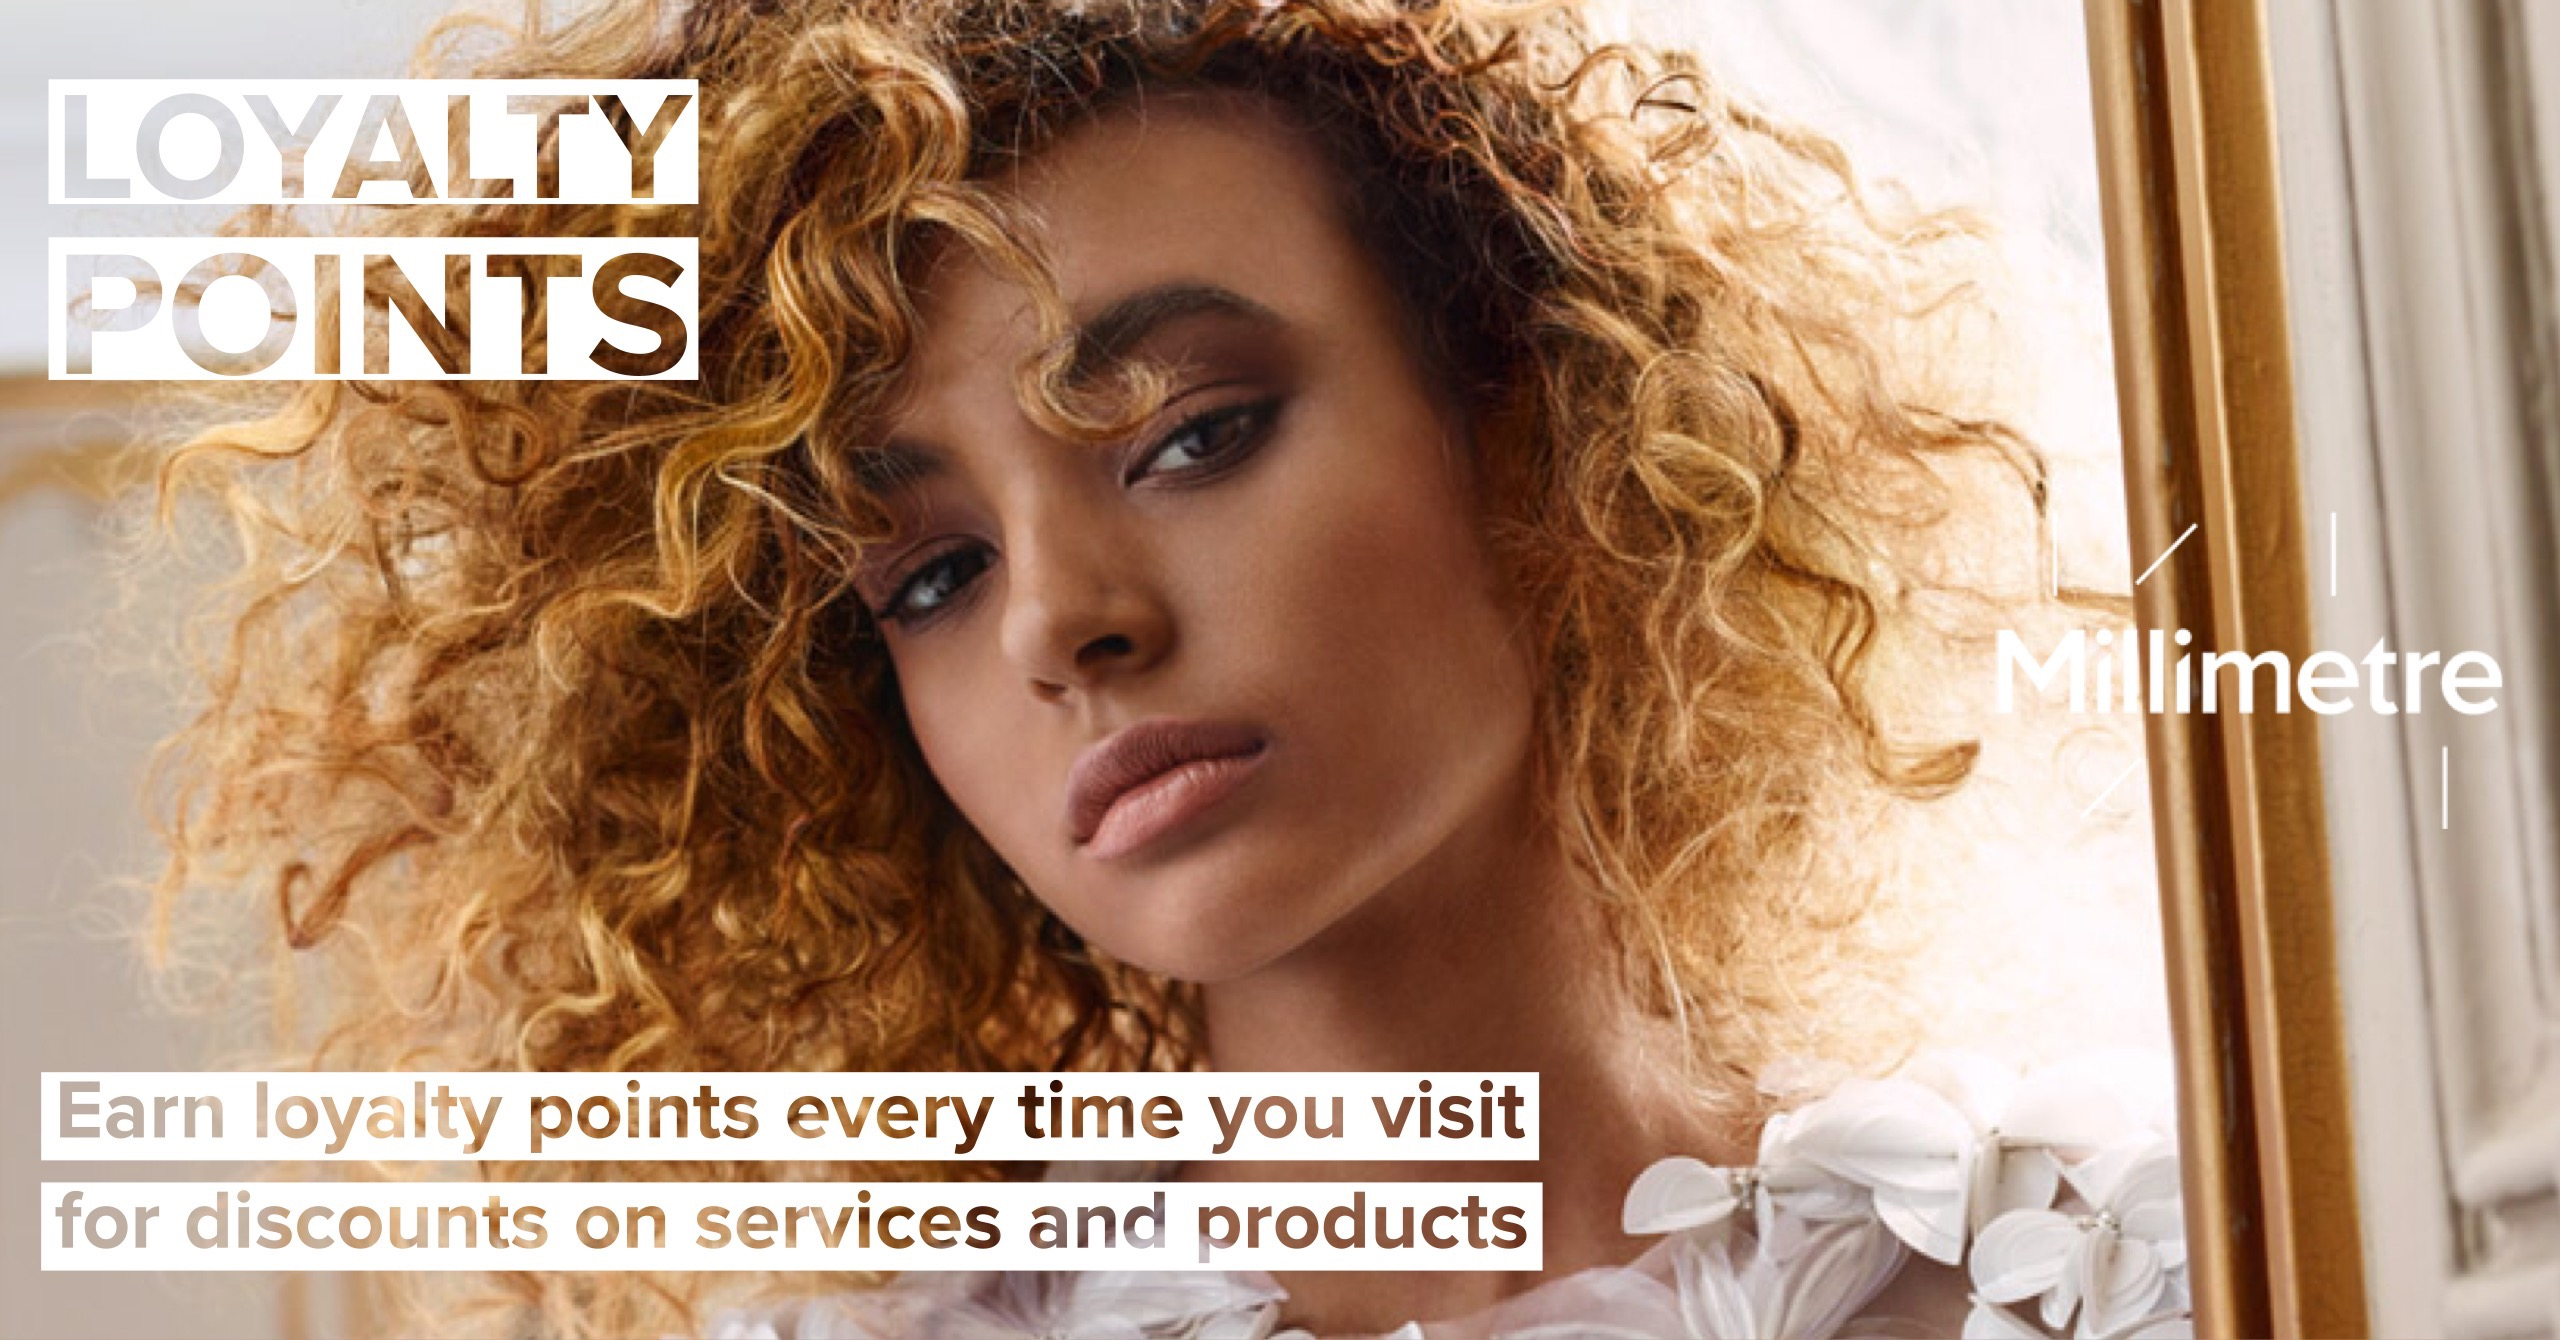 Loyalty Points Offer